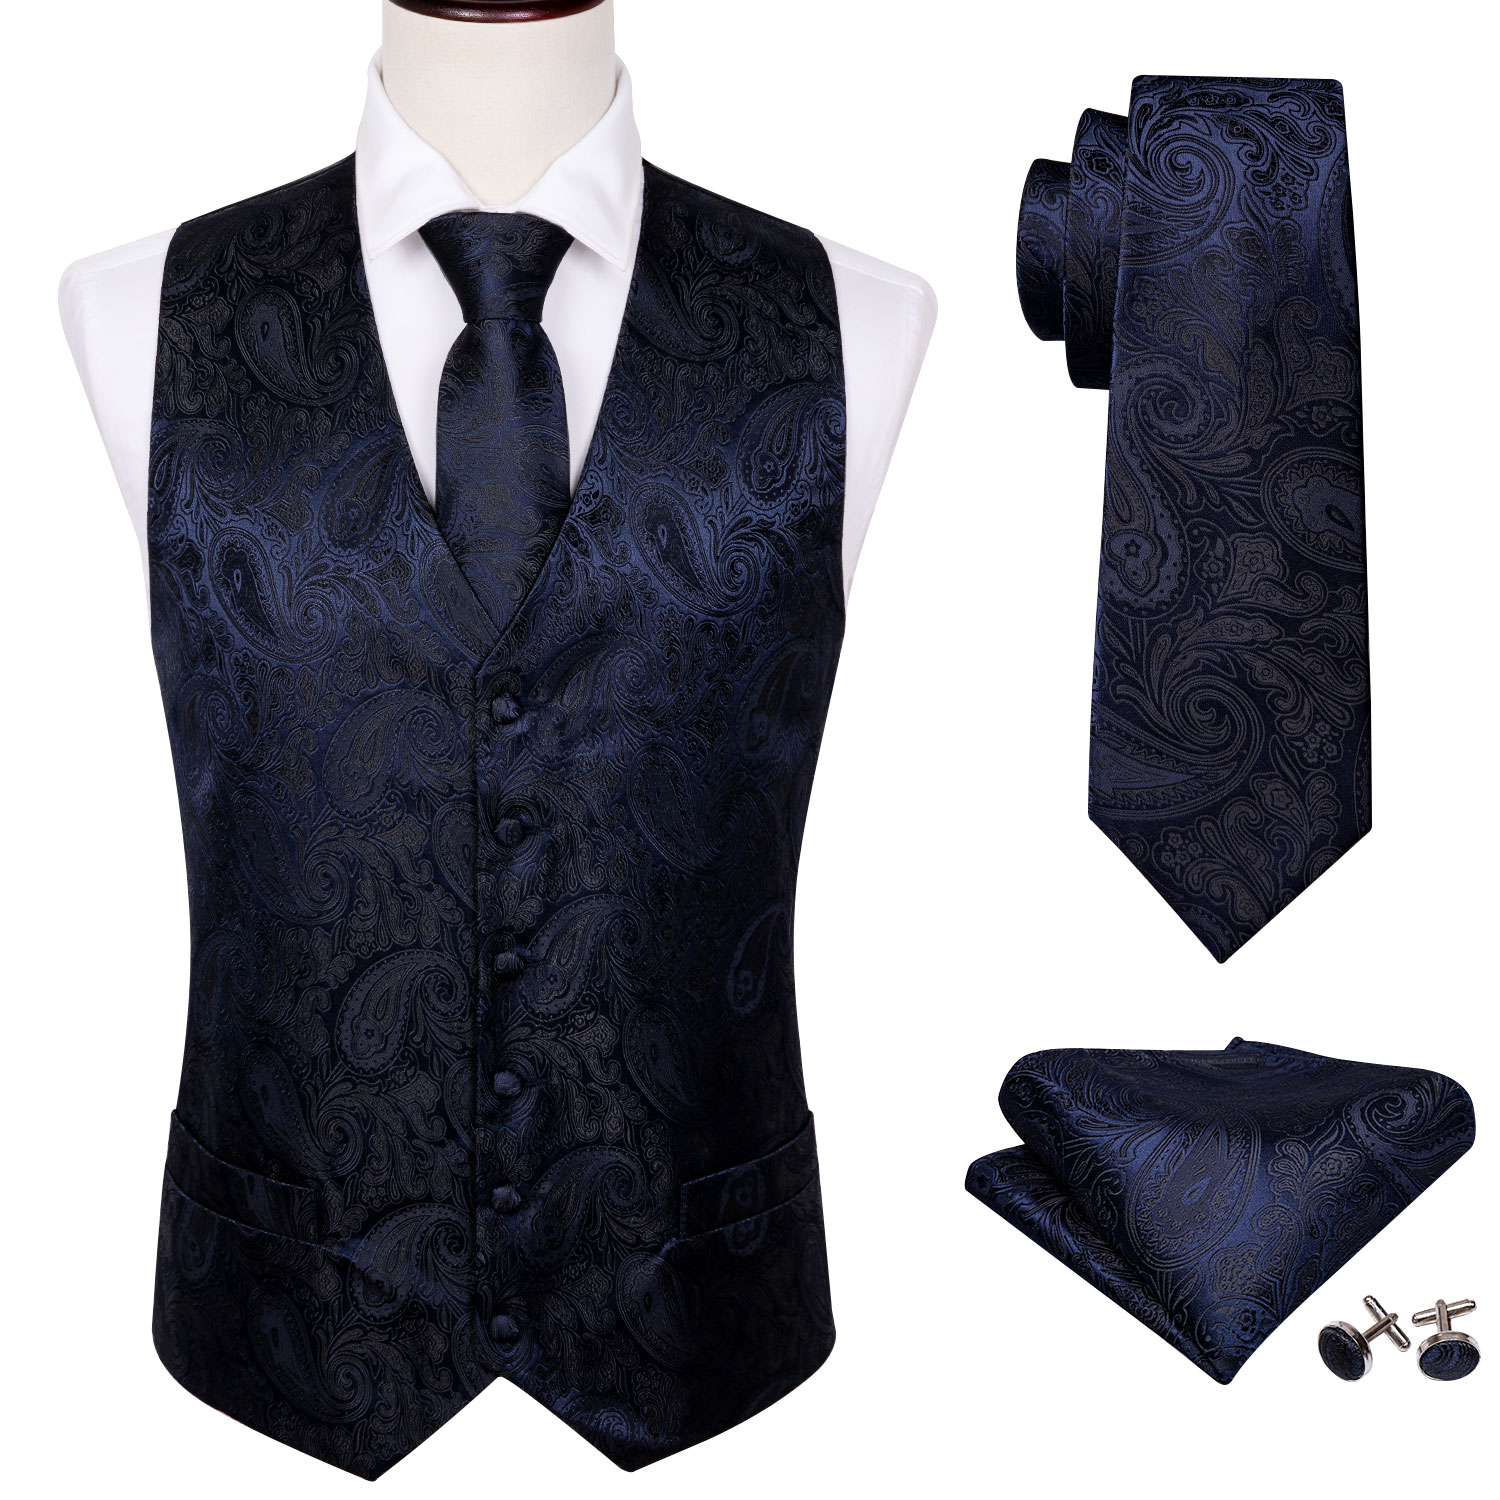 4PC Mens Extra Silk Vest Party Wedding Purple Paisley Solid Floral Waistcoat Vest Pocket Square Tie Suit Set Barry.Wang BM-2016